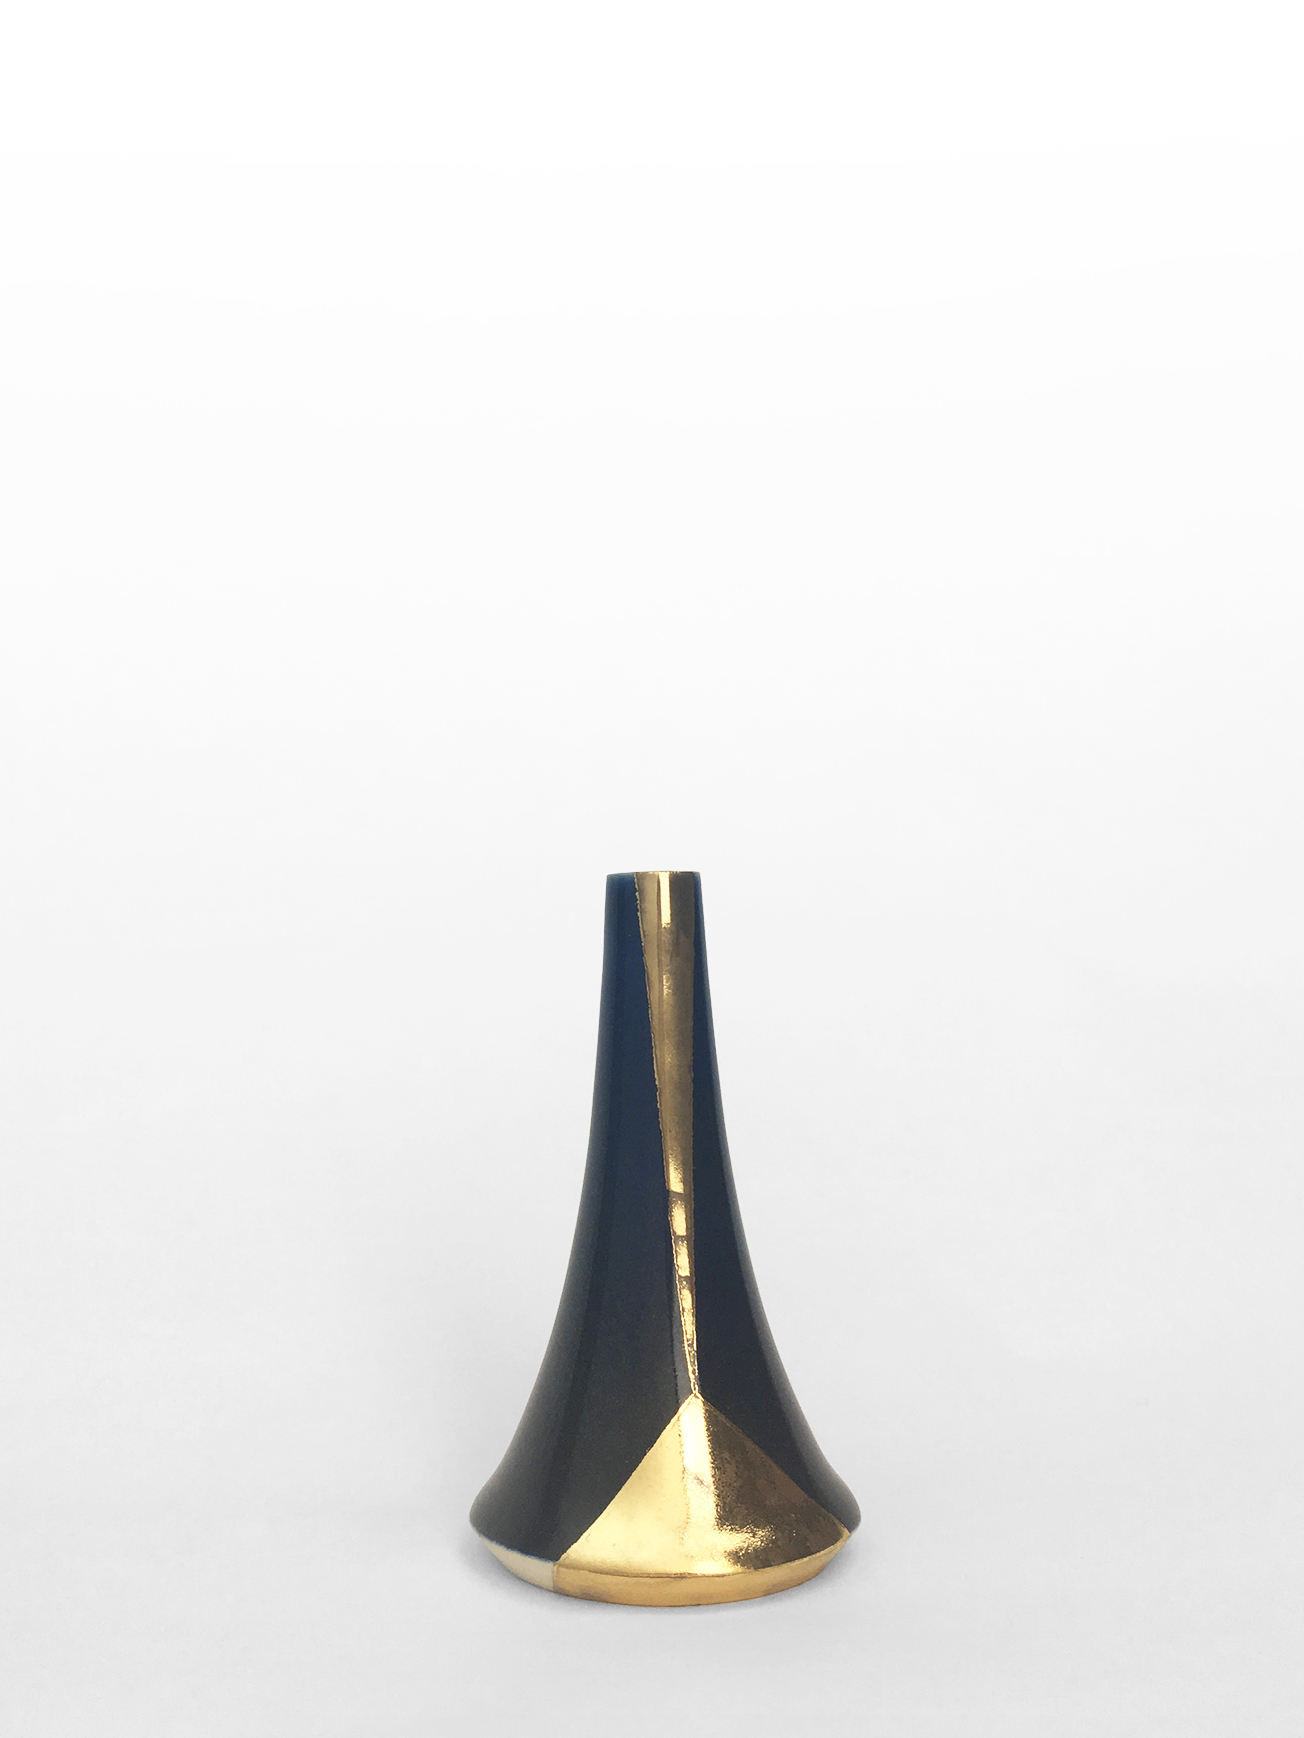 """Small volcano vase, hand-thrown porcelain with midnight blue glaze and gold luster geometric design, 4 1/4"""" x 2 1/2"""", $150"""